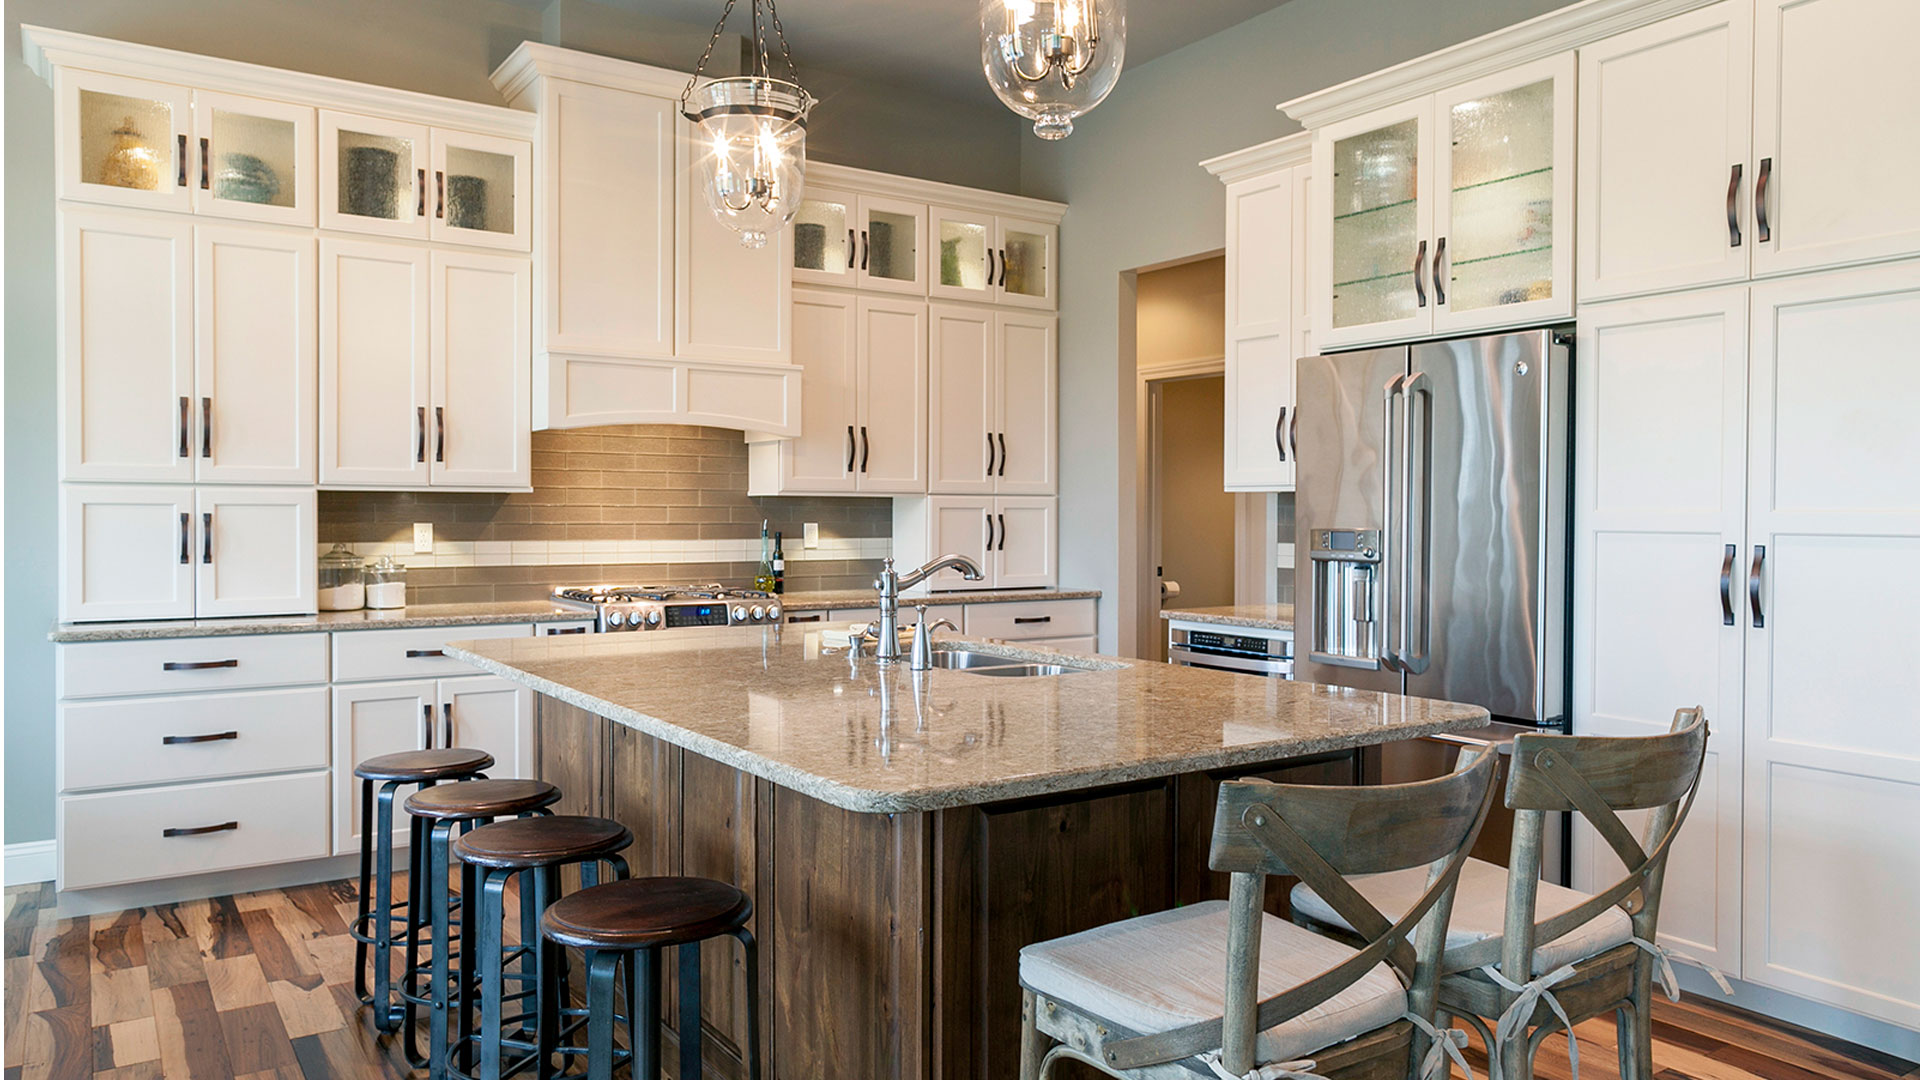 Custom Kitchen Cabinets for your Home Remodeling project in Sumter County, FL